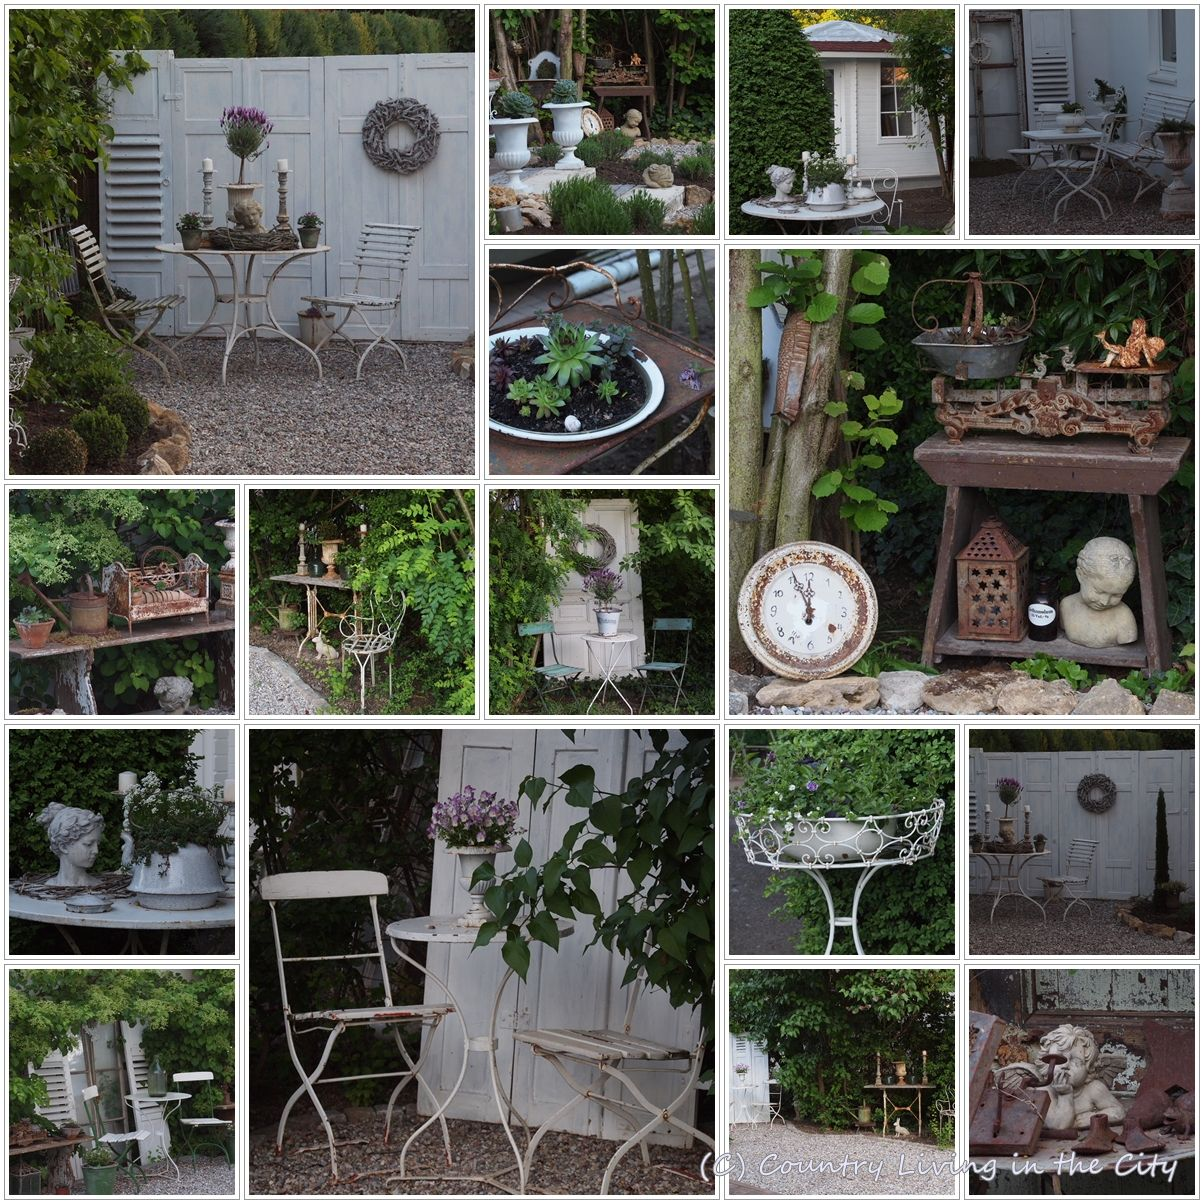 bildergebnis f r shabby garten gestalten garten pinterest. Black Bedroom Furniture Sets. Home Design Ideas